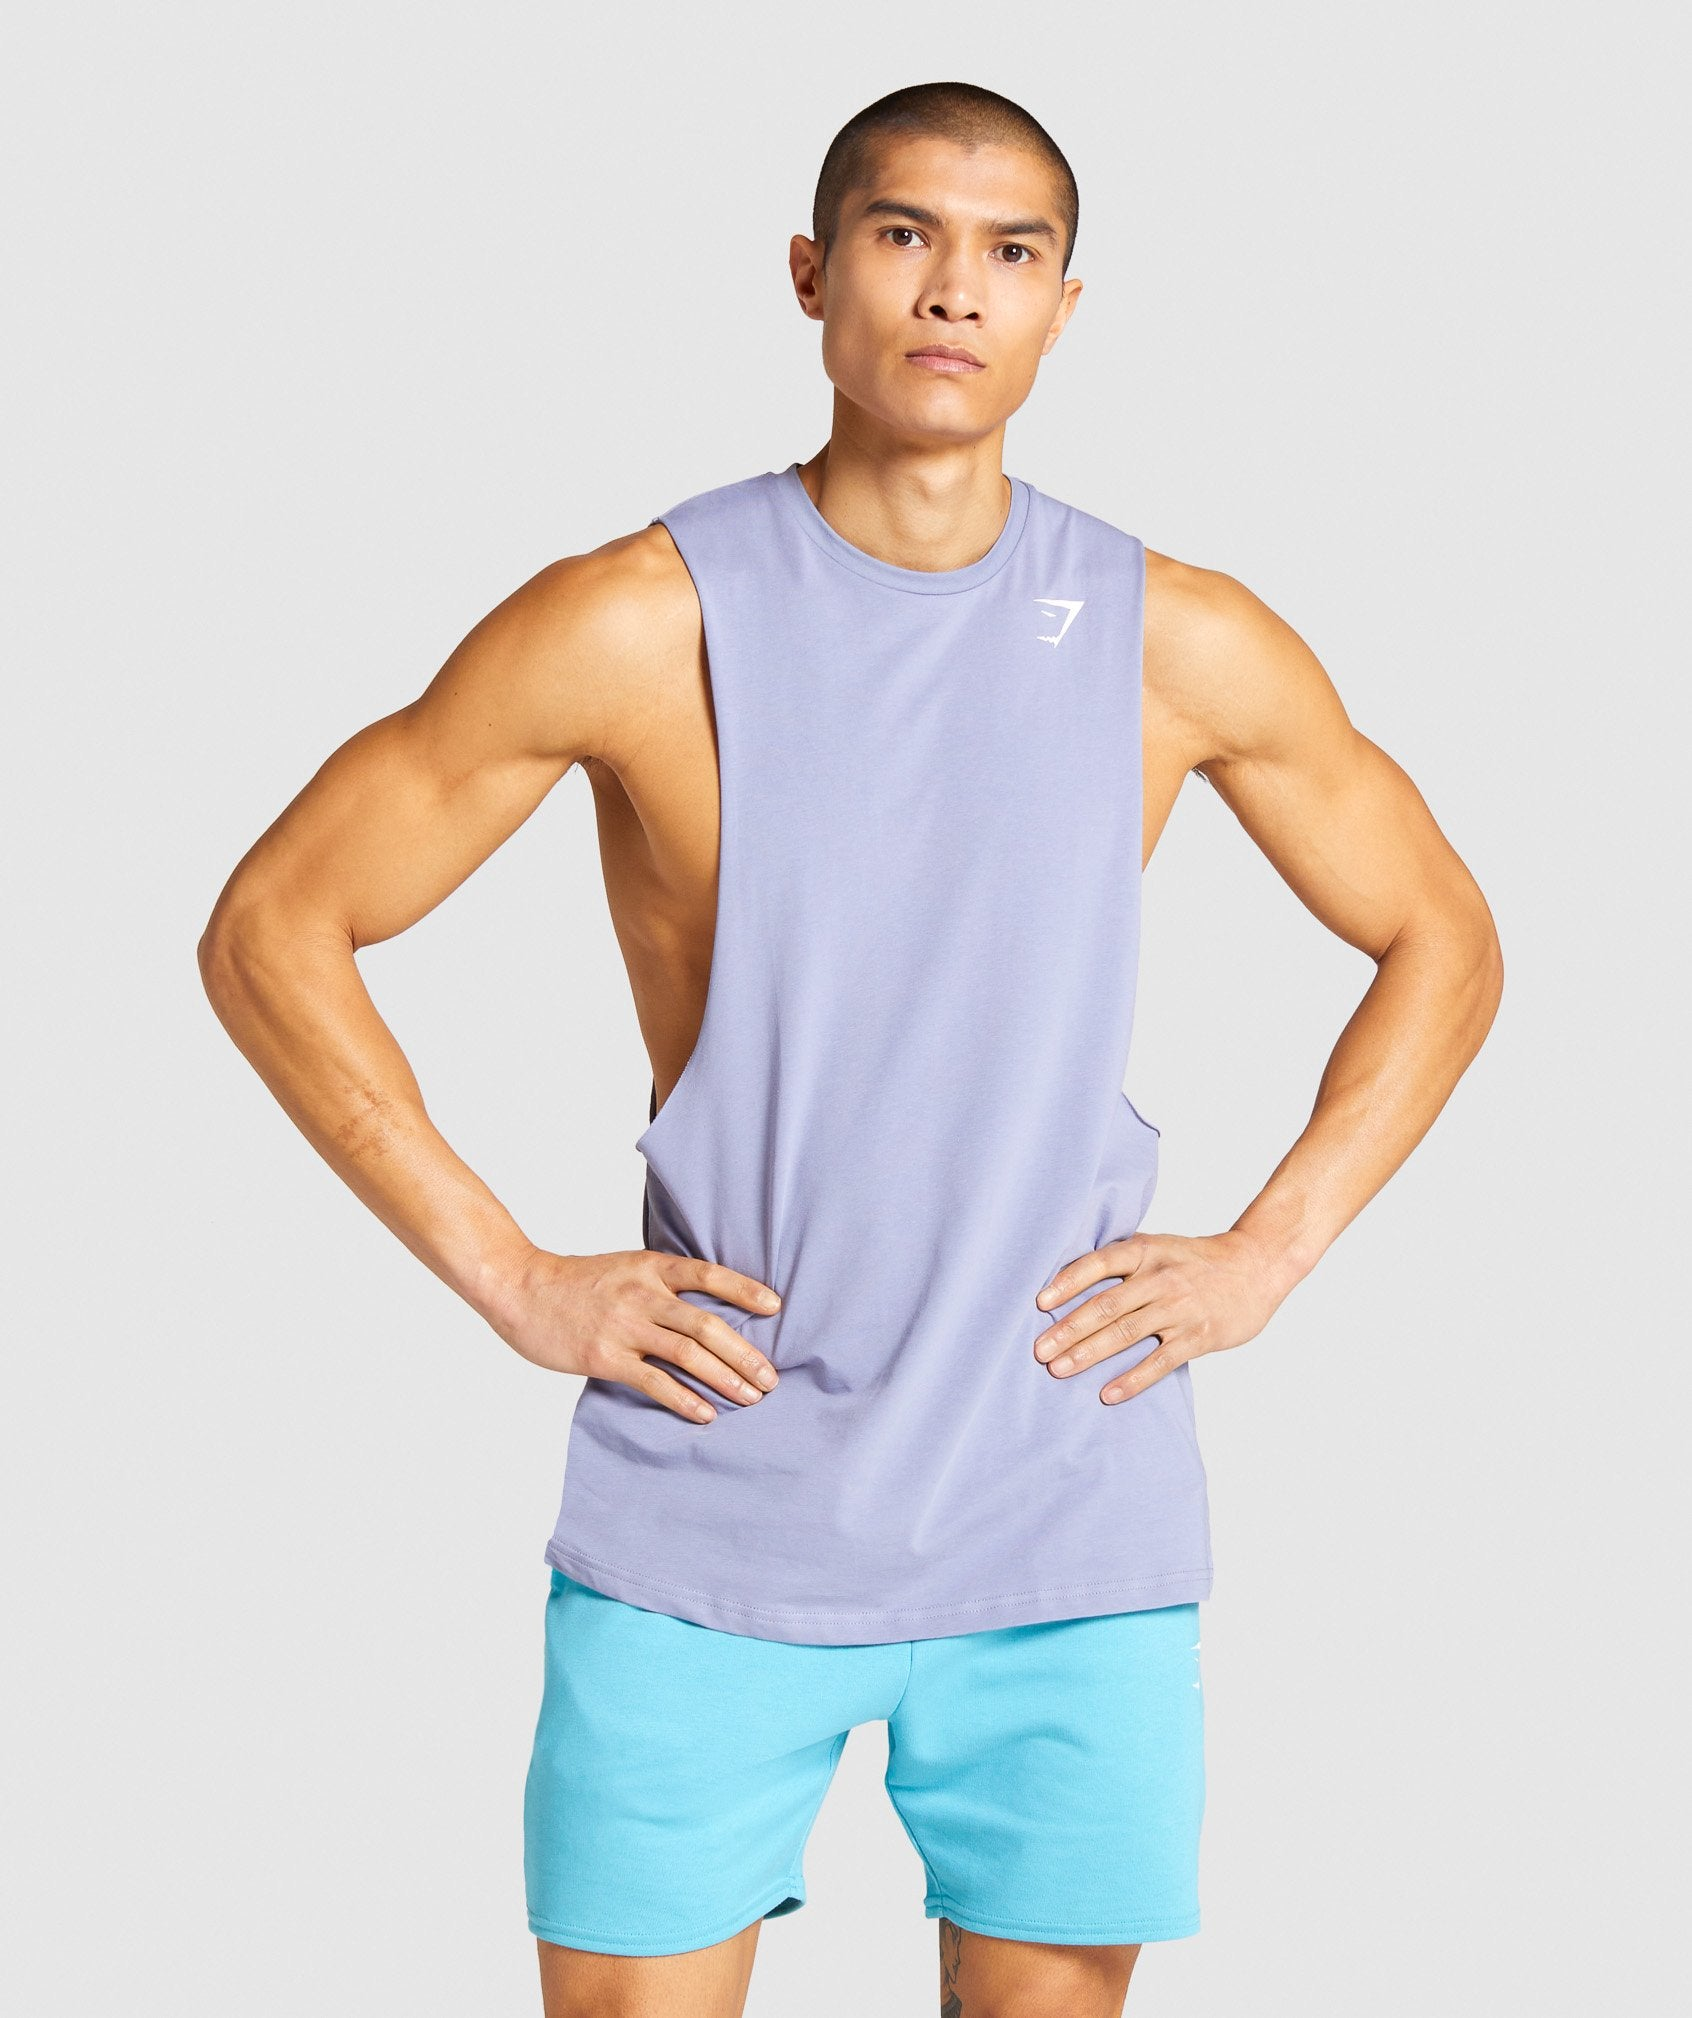 Classier: Buy Gymshark Critical Drop Arm Tank - Blue - Gymshark